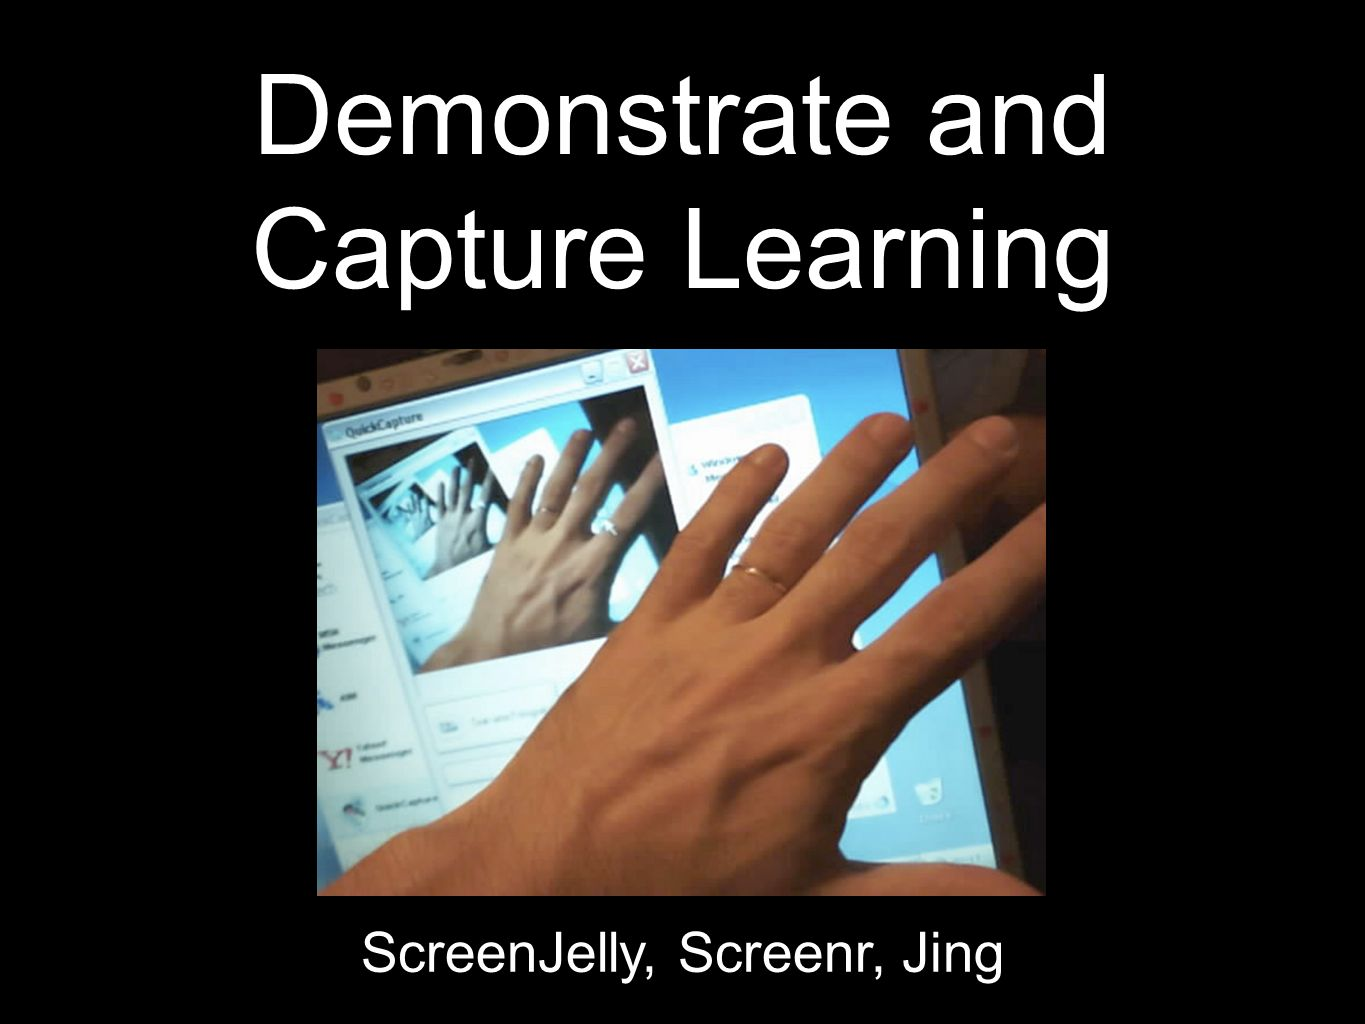 Demonstrate and Capture Learning ScreenJelly, Screenr, Jing